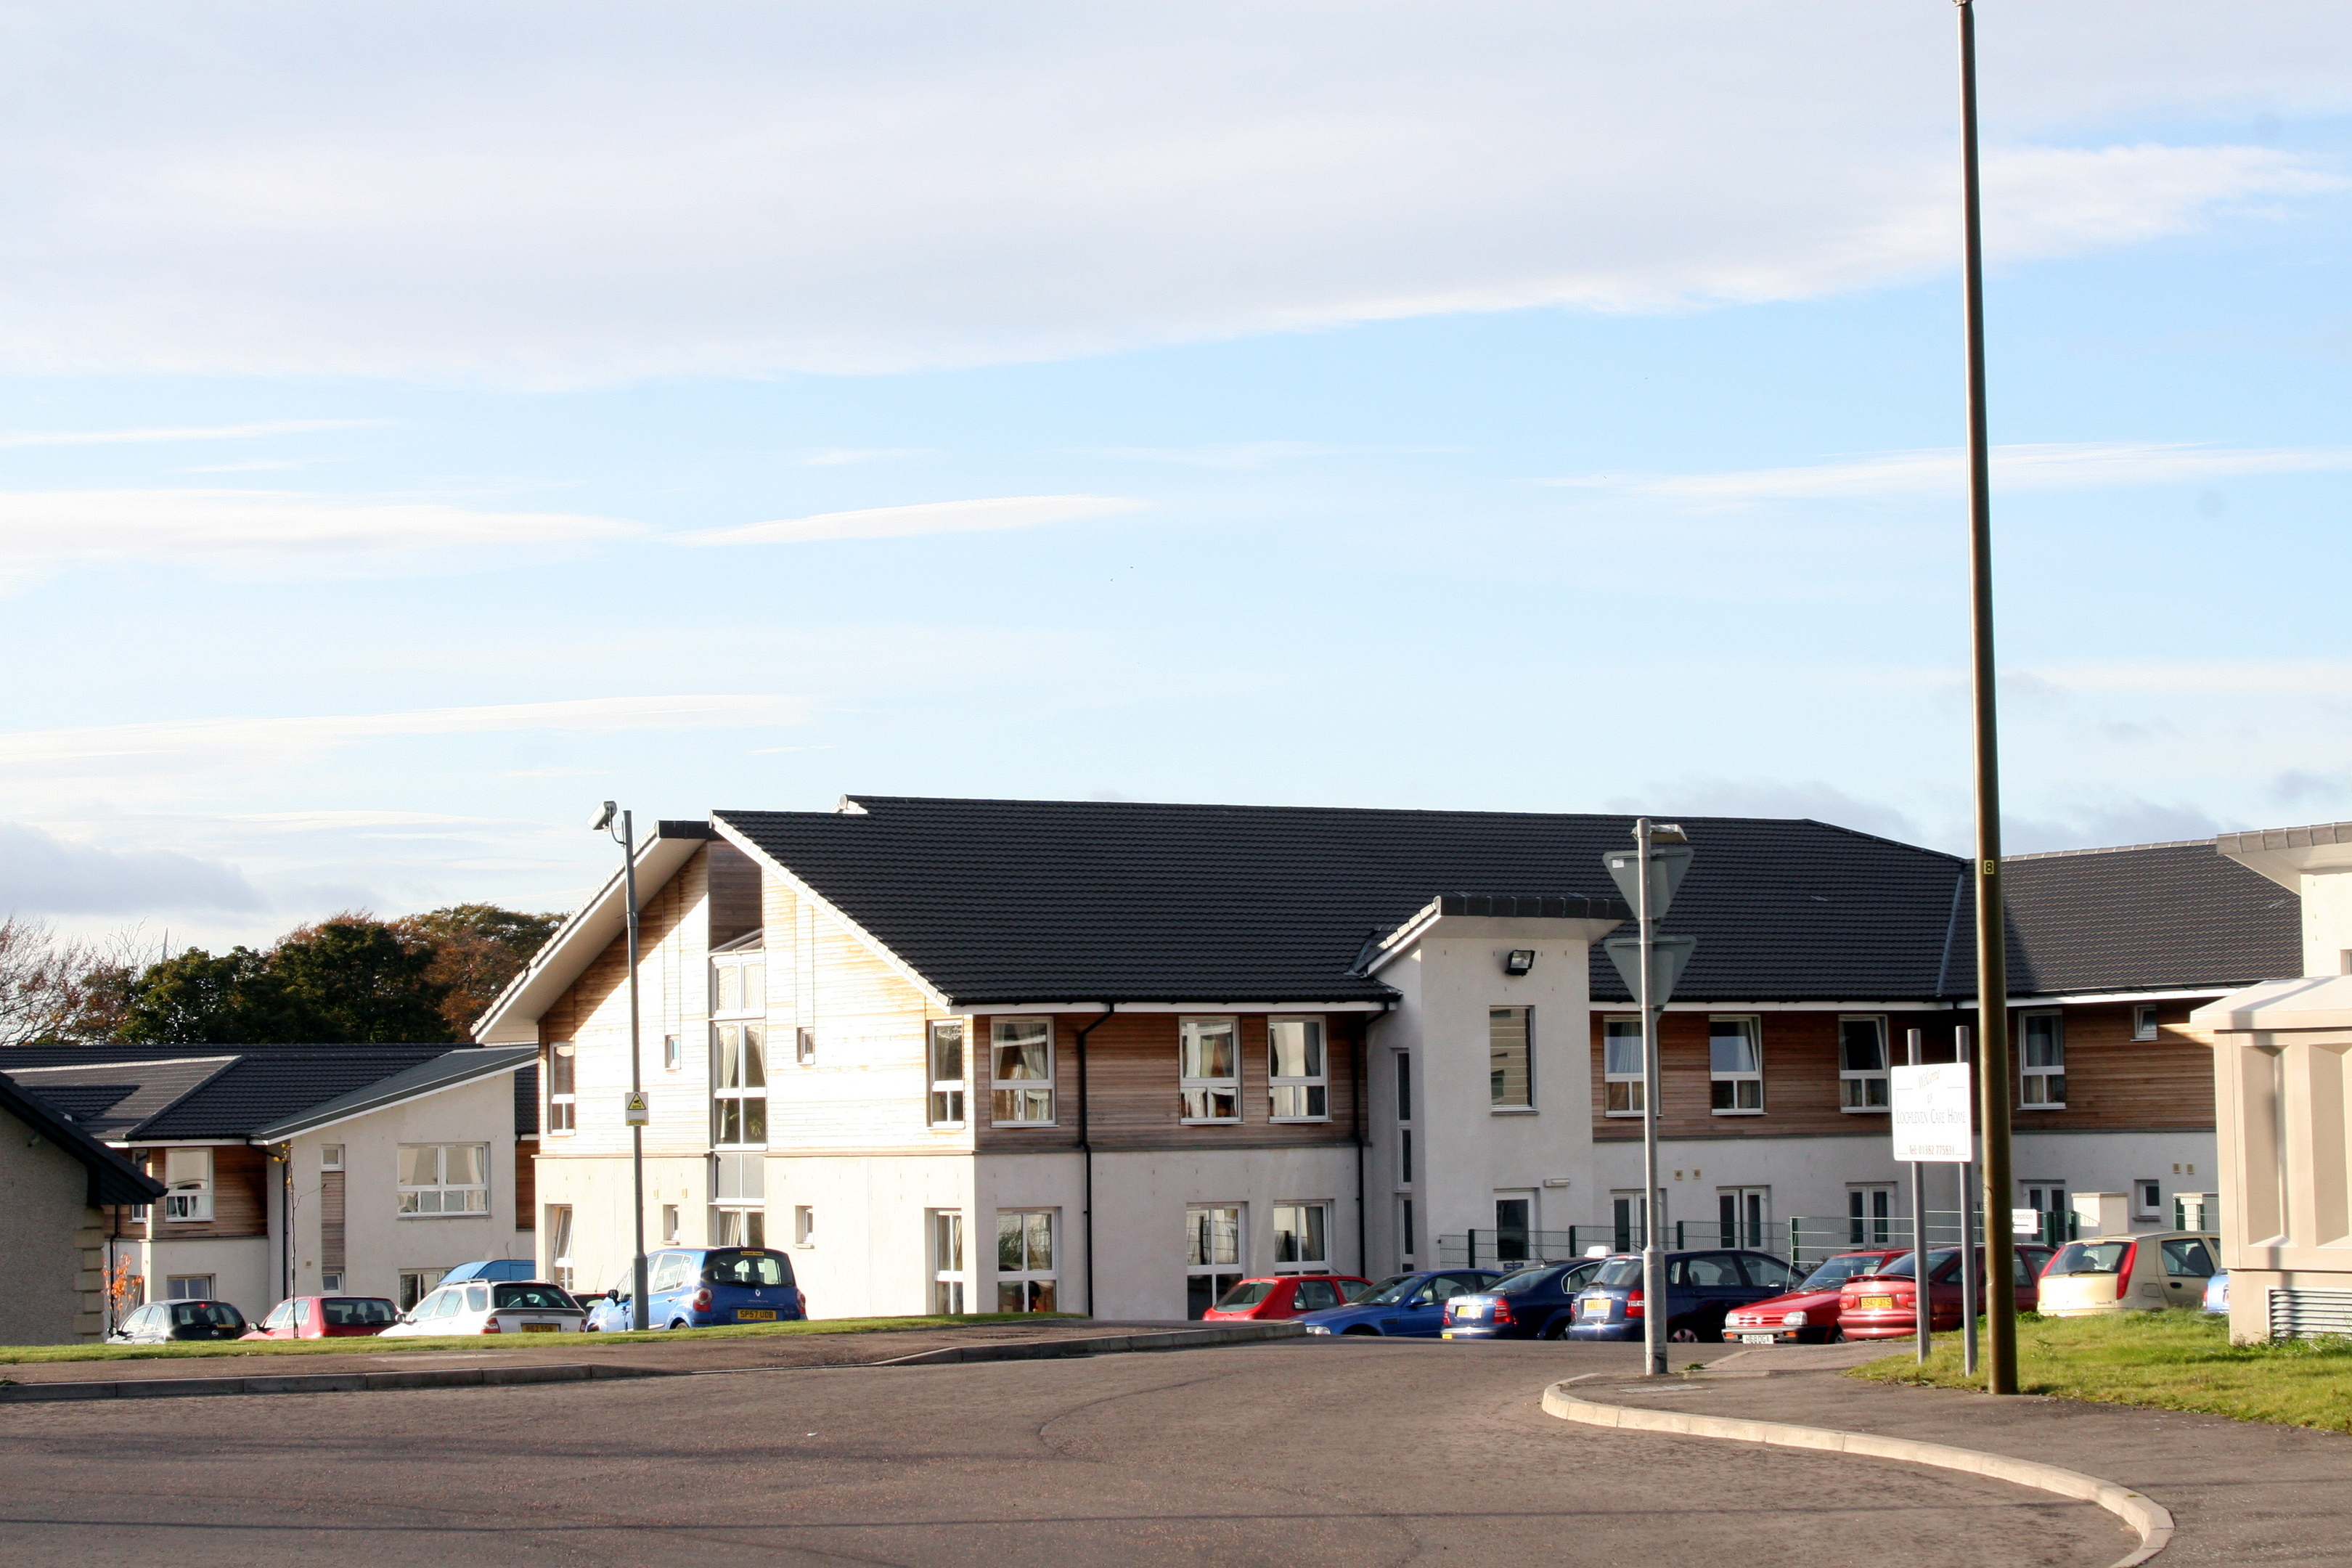 Lochleven Care Home on the edge of Dundee